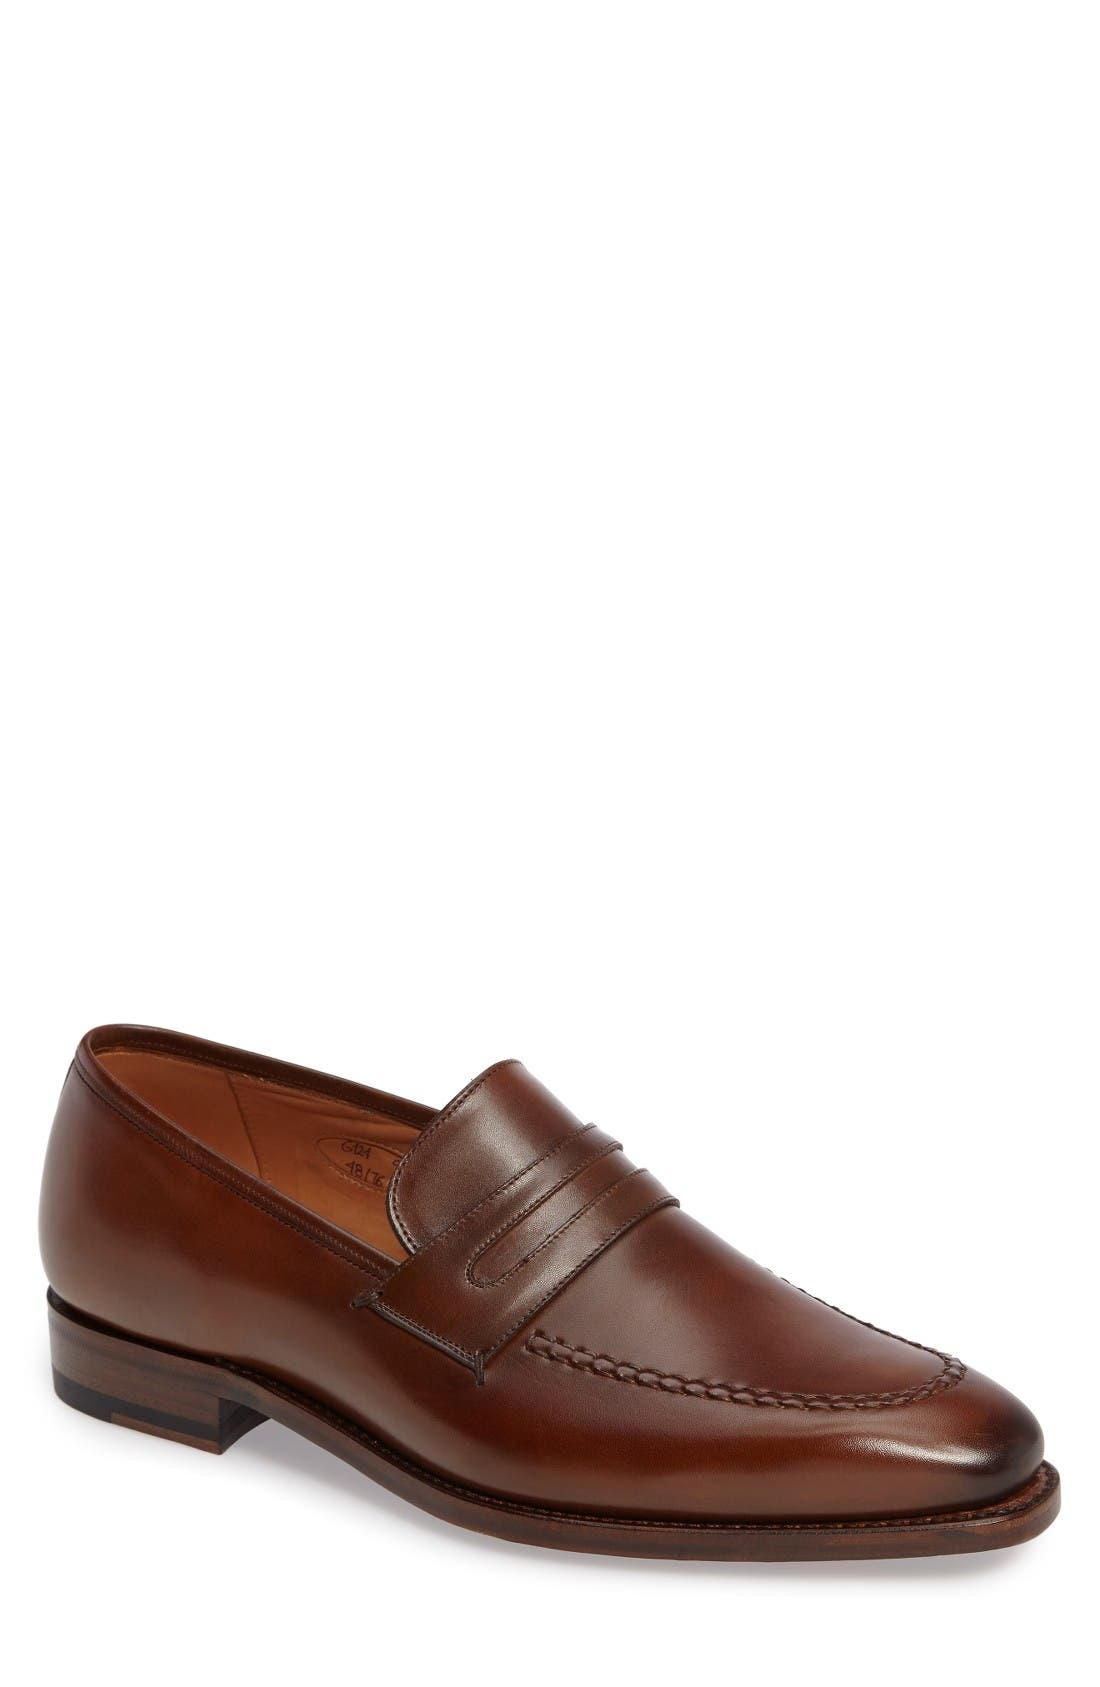 Impronta by Mezlan G124 Apron Toe Loafer (Men)